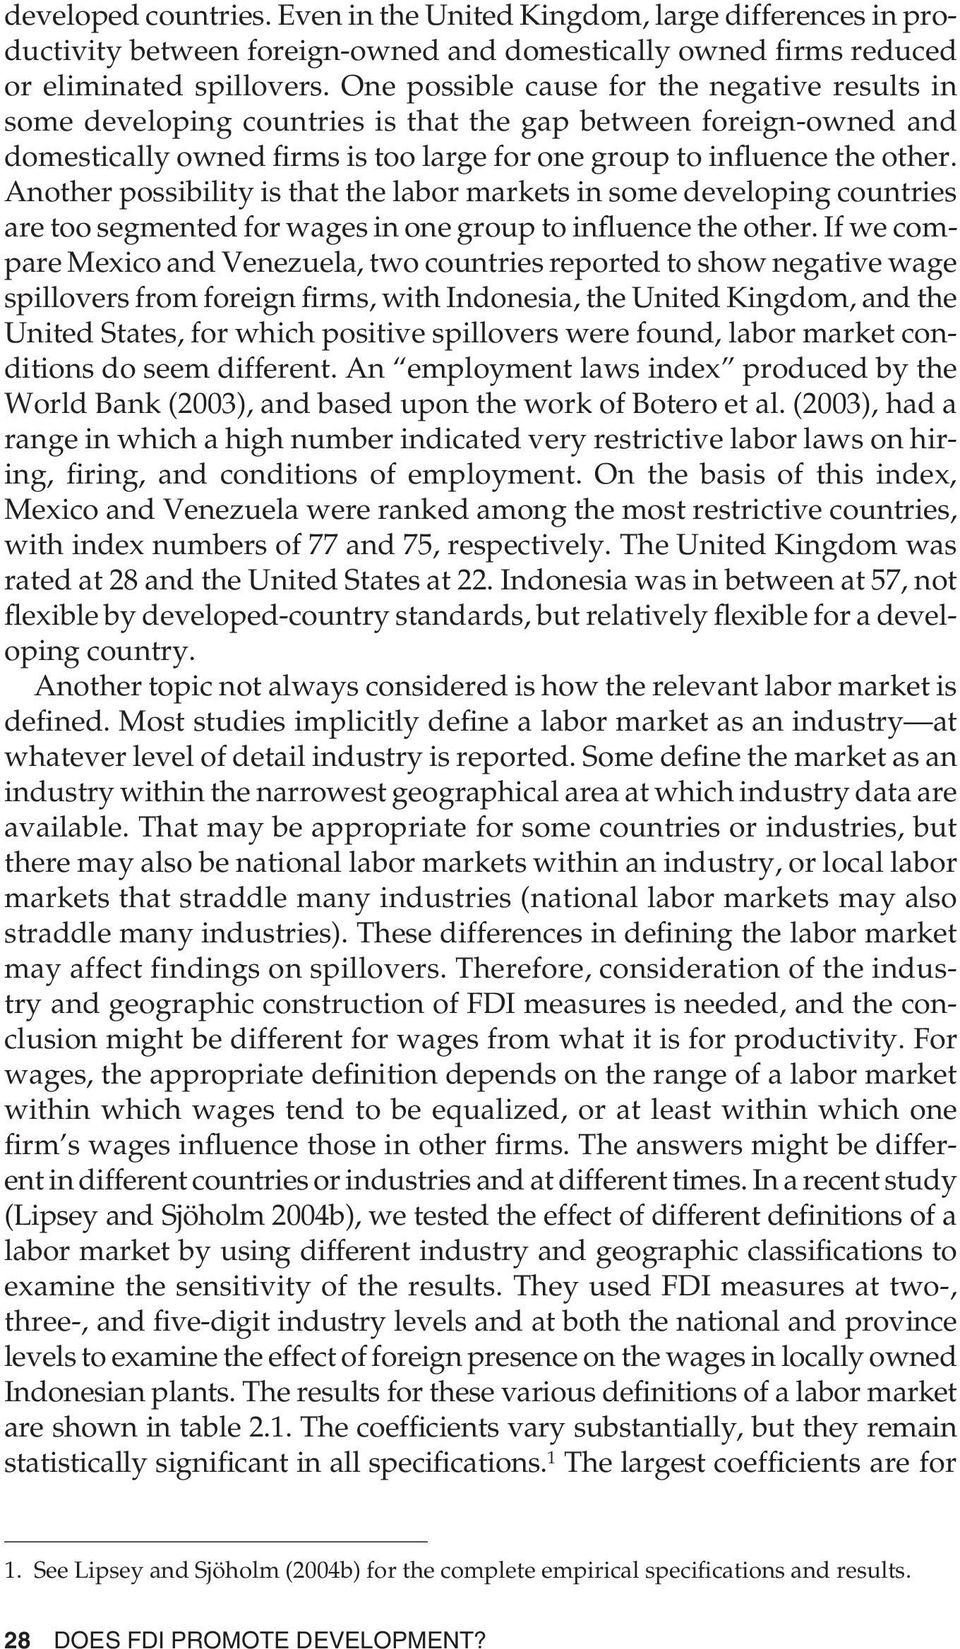 Another possibility is that the labor markets in some developing countries are too segmented for wages in one group to influence the other.